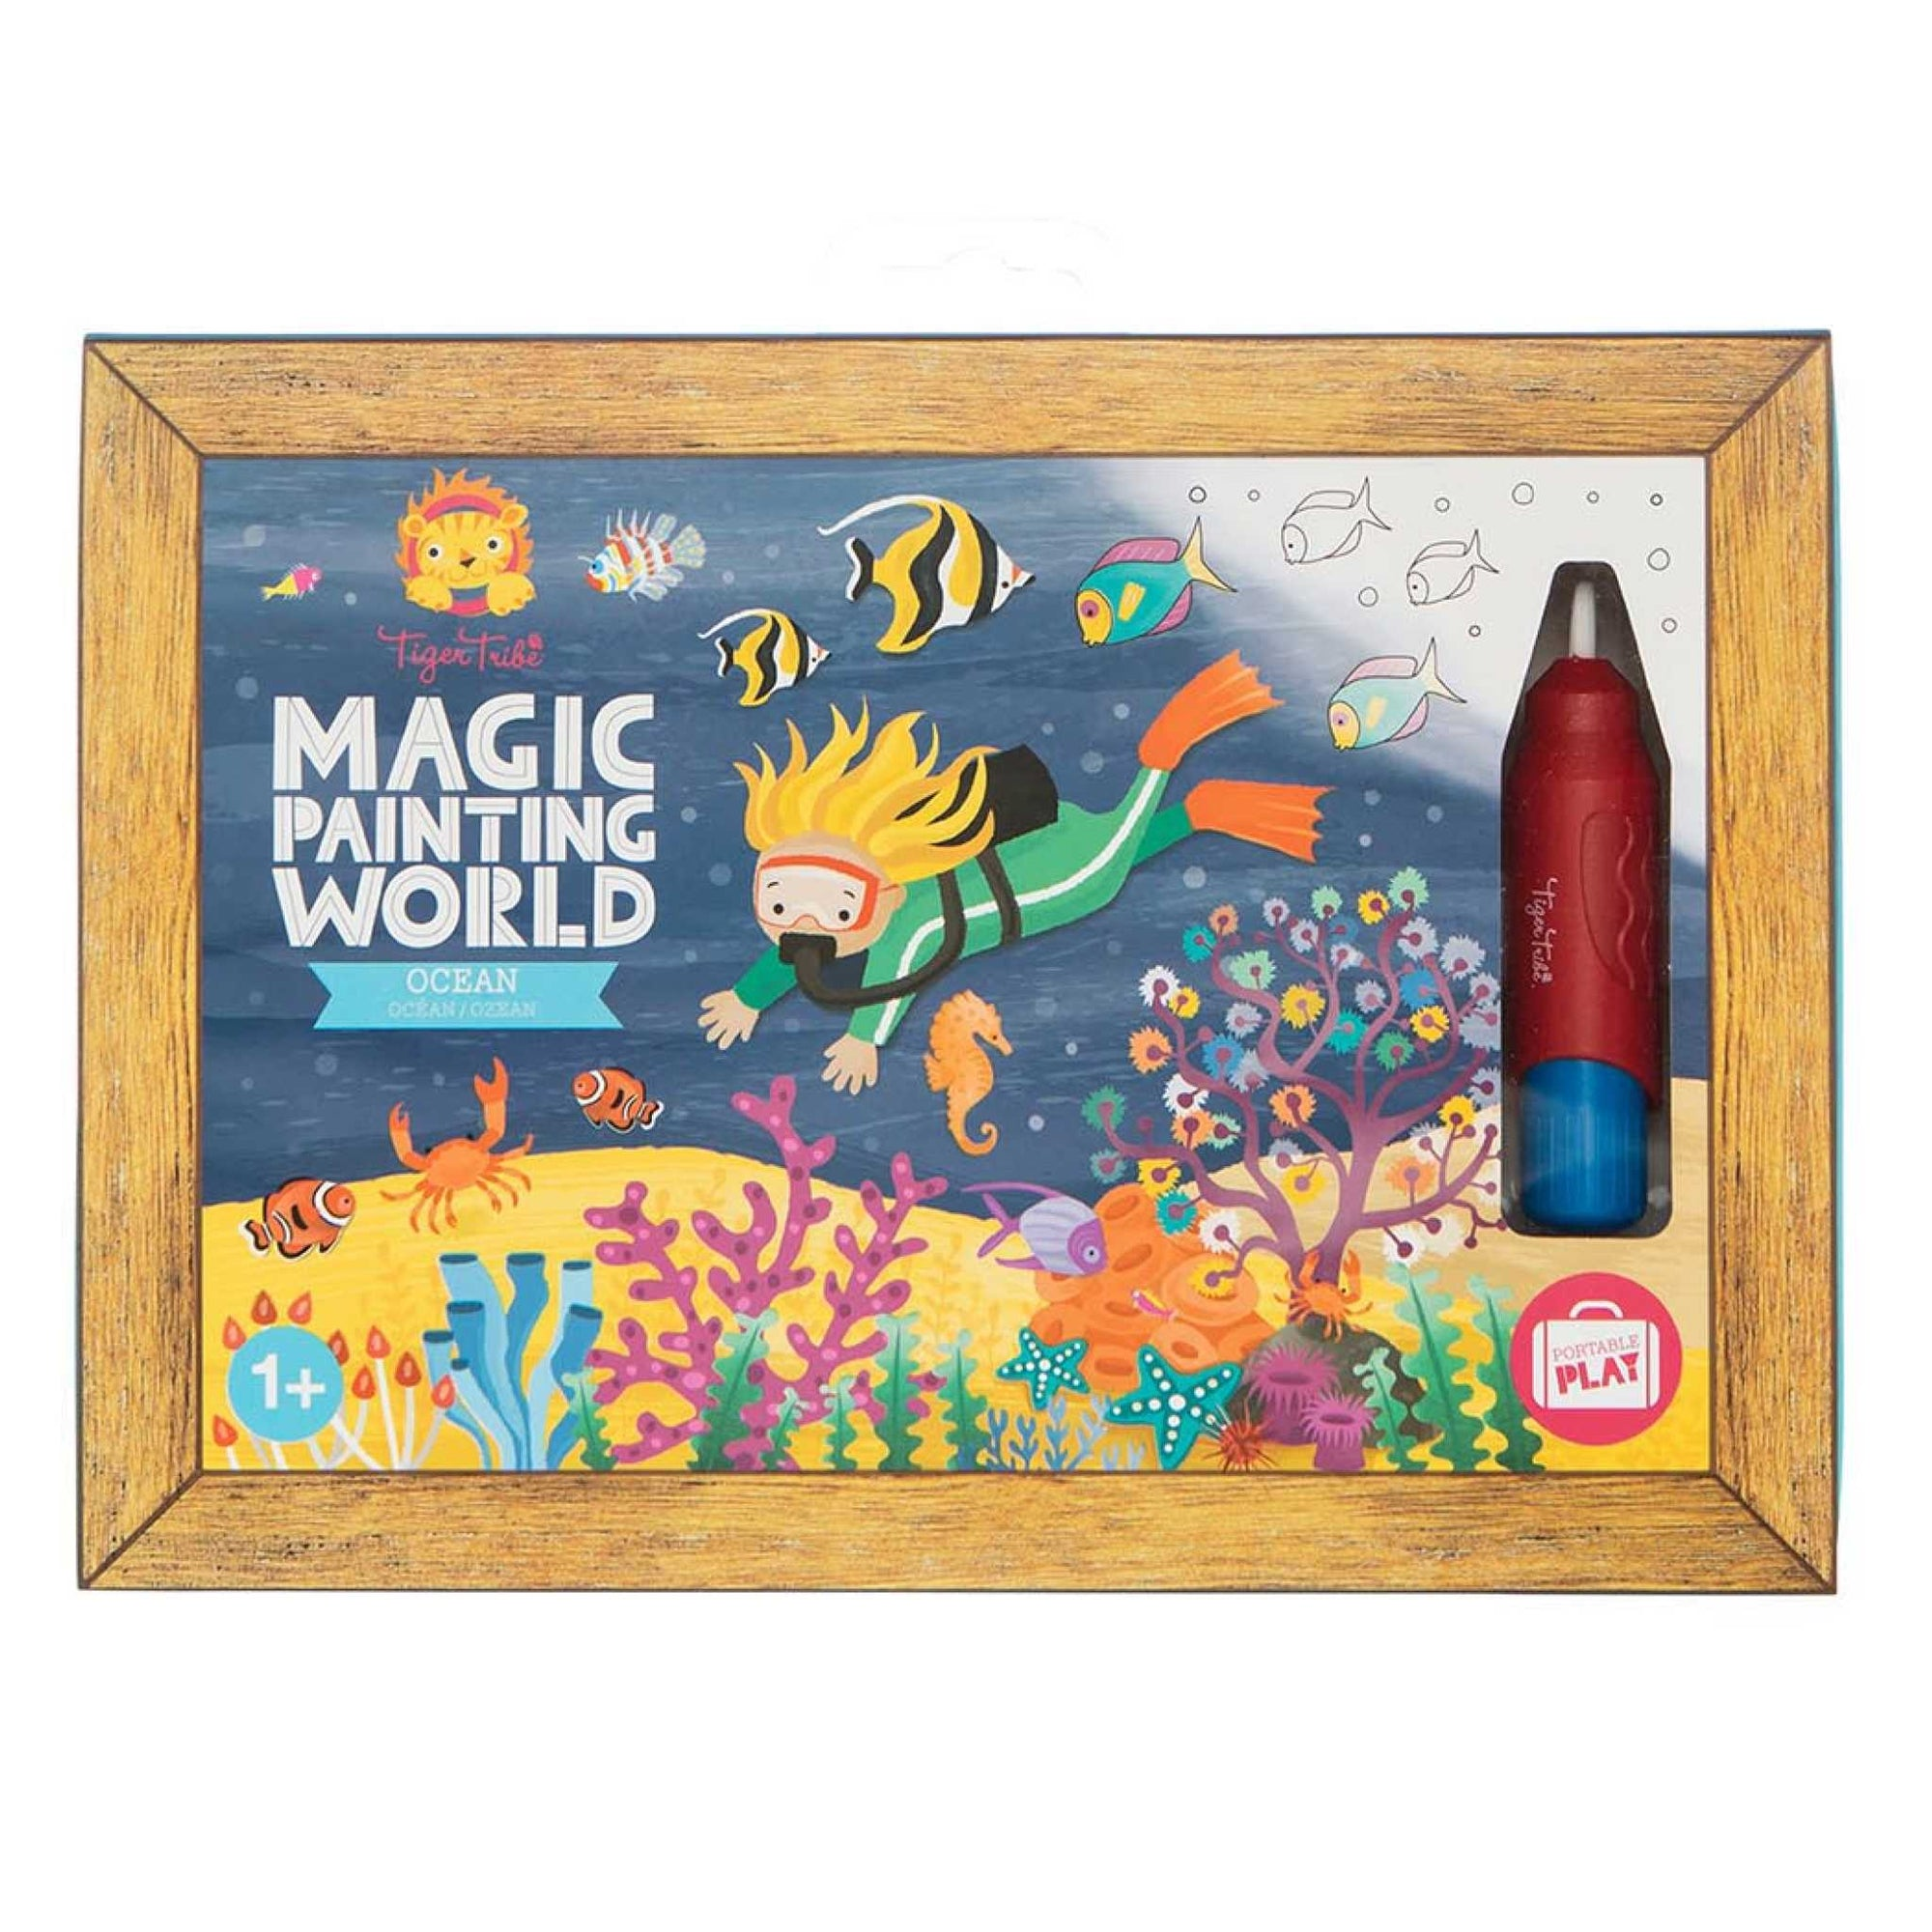 Magic Painting World - Ocean-Toys-Tiger Tribe-Little Soldiers